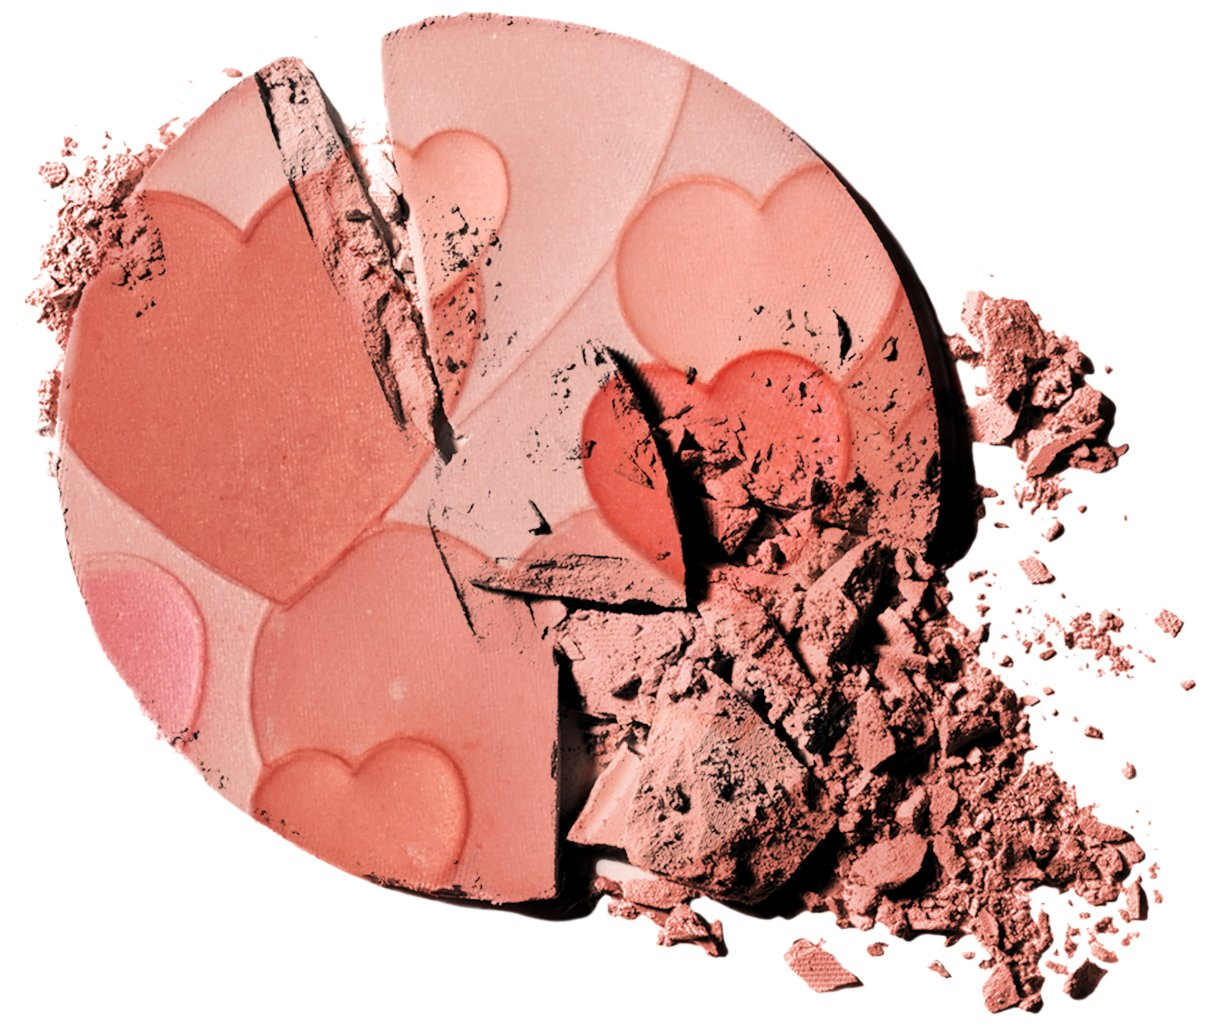 Physicians Formula Happy Booster Glow & Mood Boosting Blush, Warm, 0.24 Ounce by Physicians Formula (Image #5)